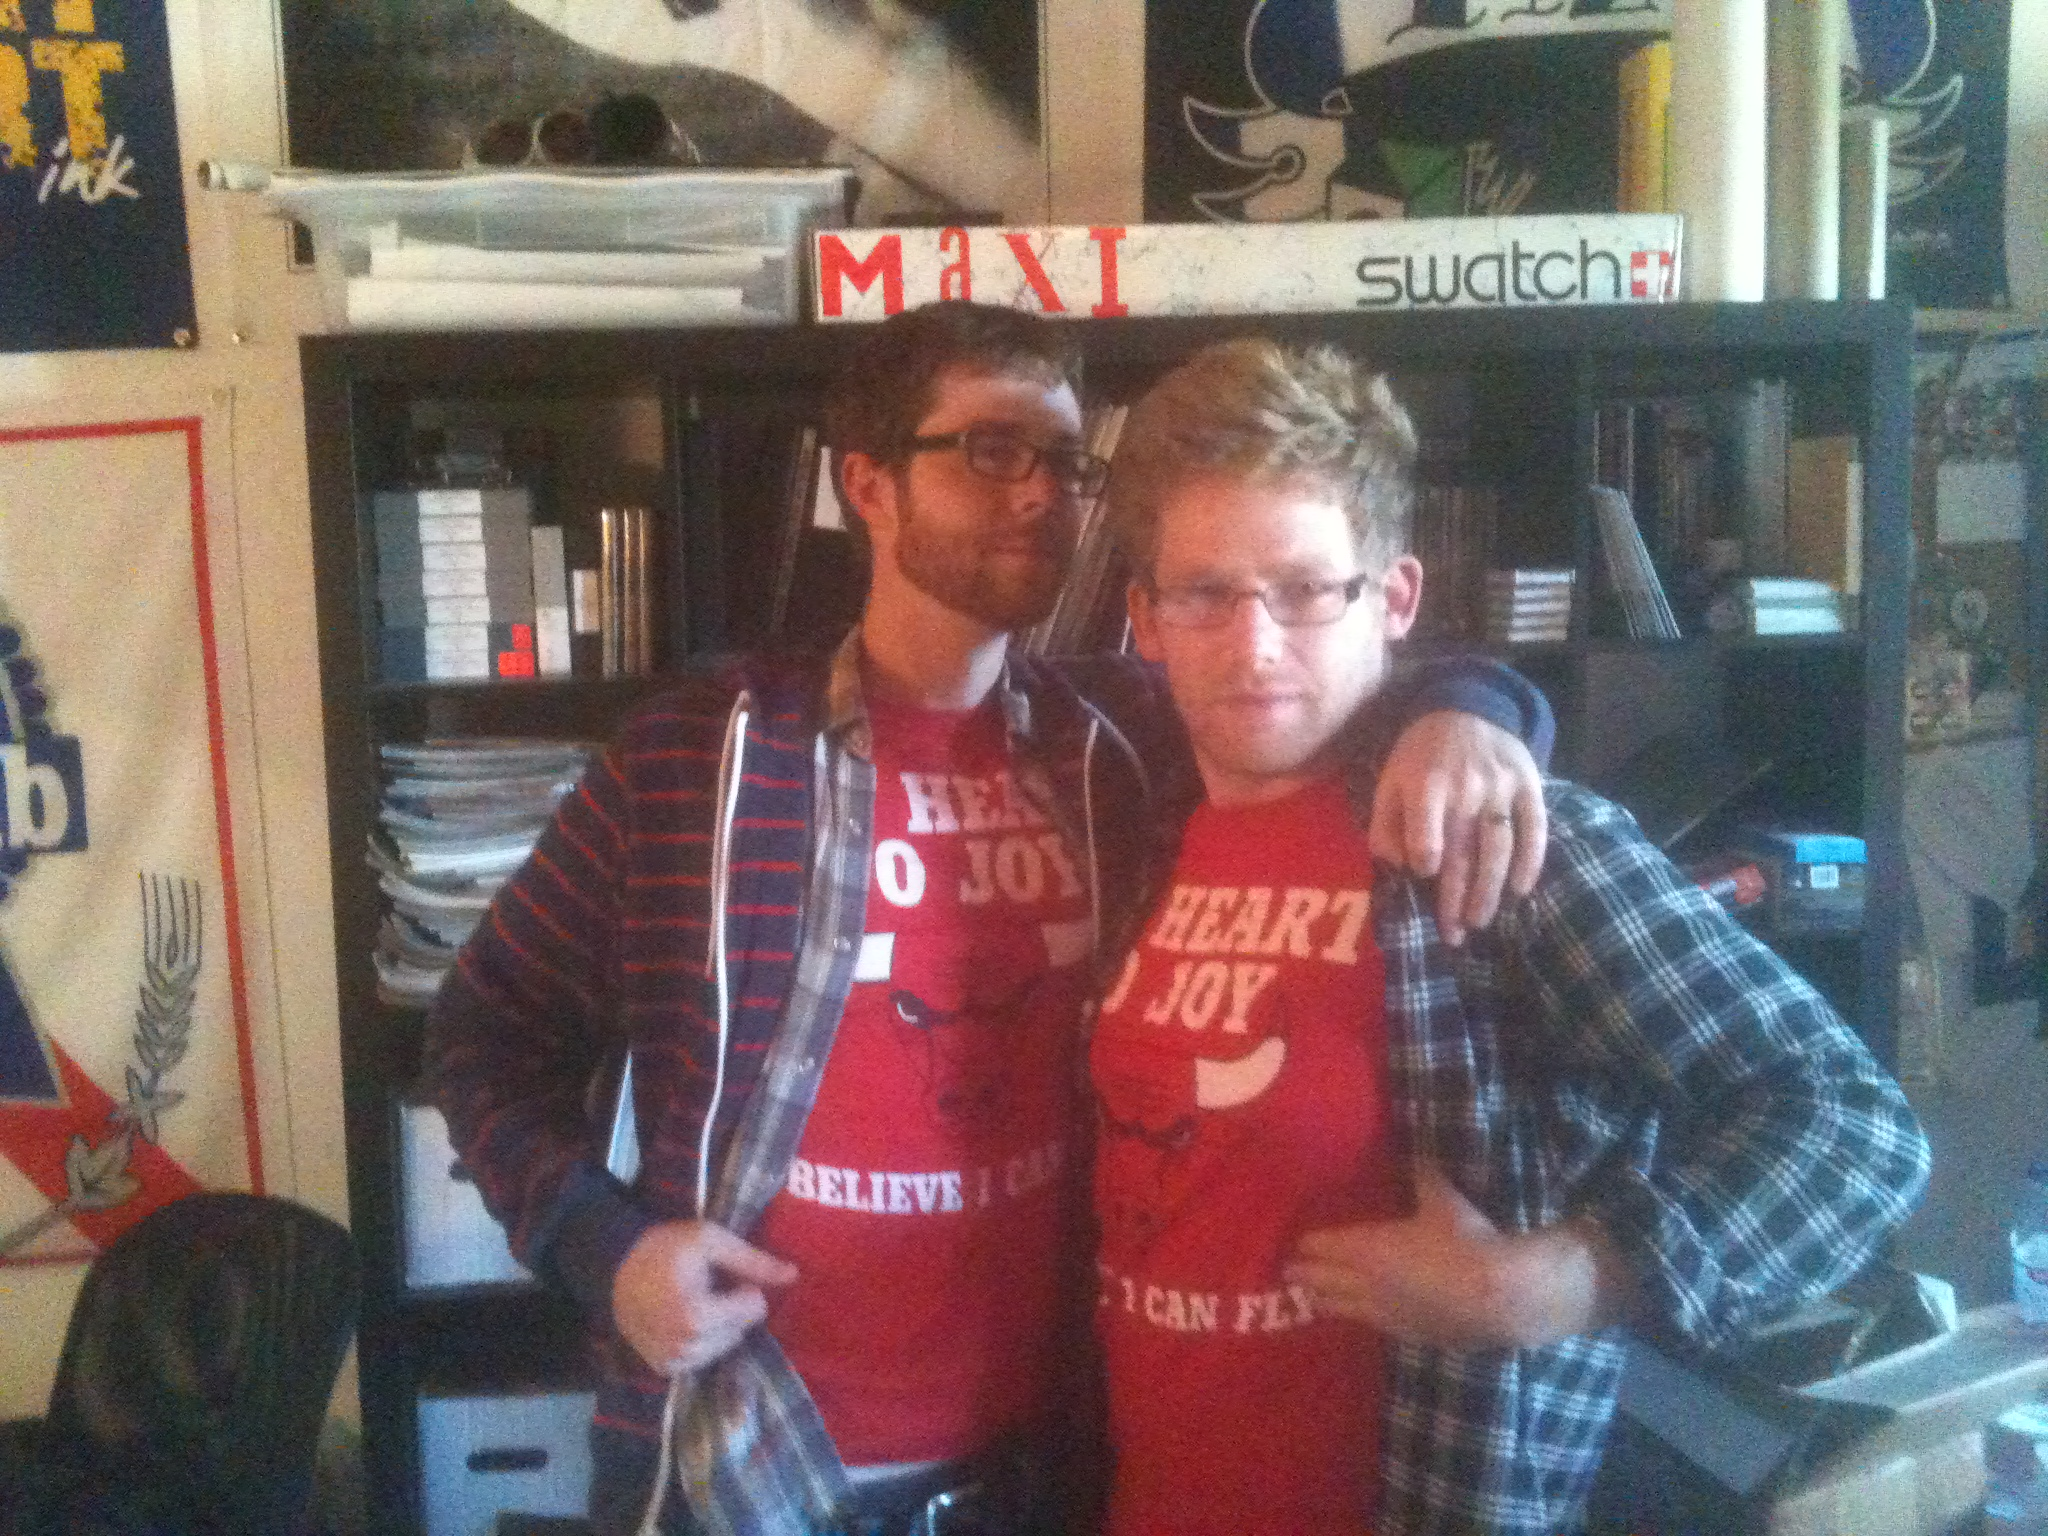 Kevin and Seth, who founded Topshelf Records in 2006, wearing the same My Heart to Joy band t-shirt back in 2009.